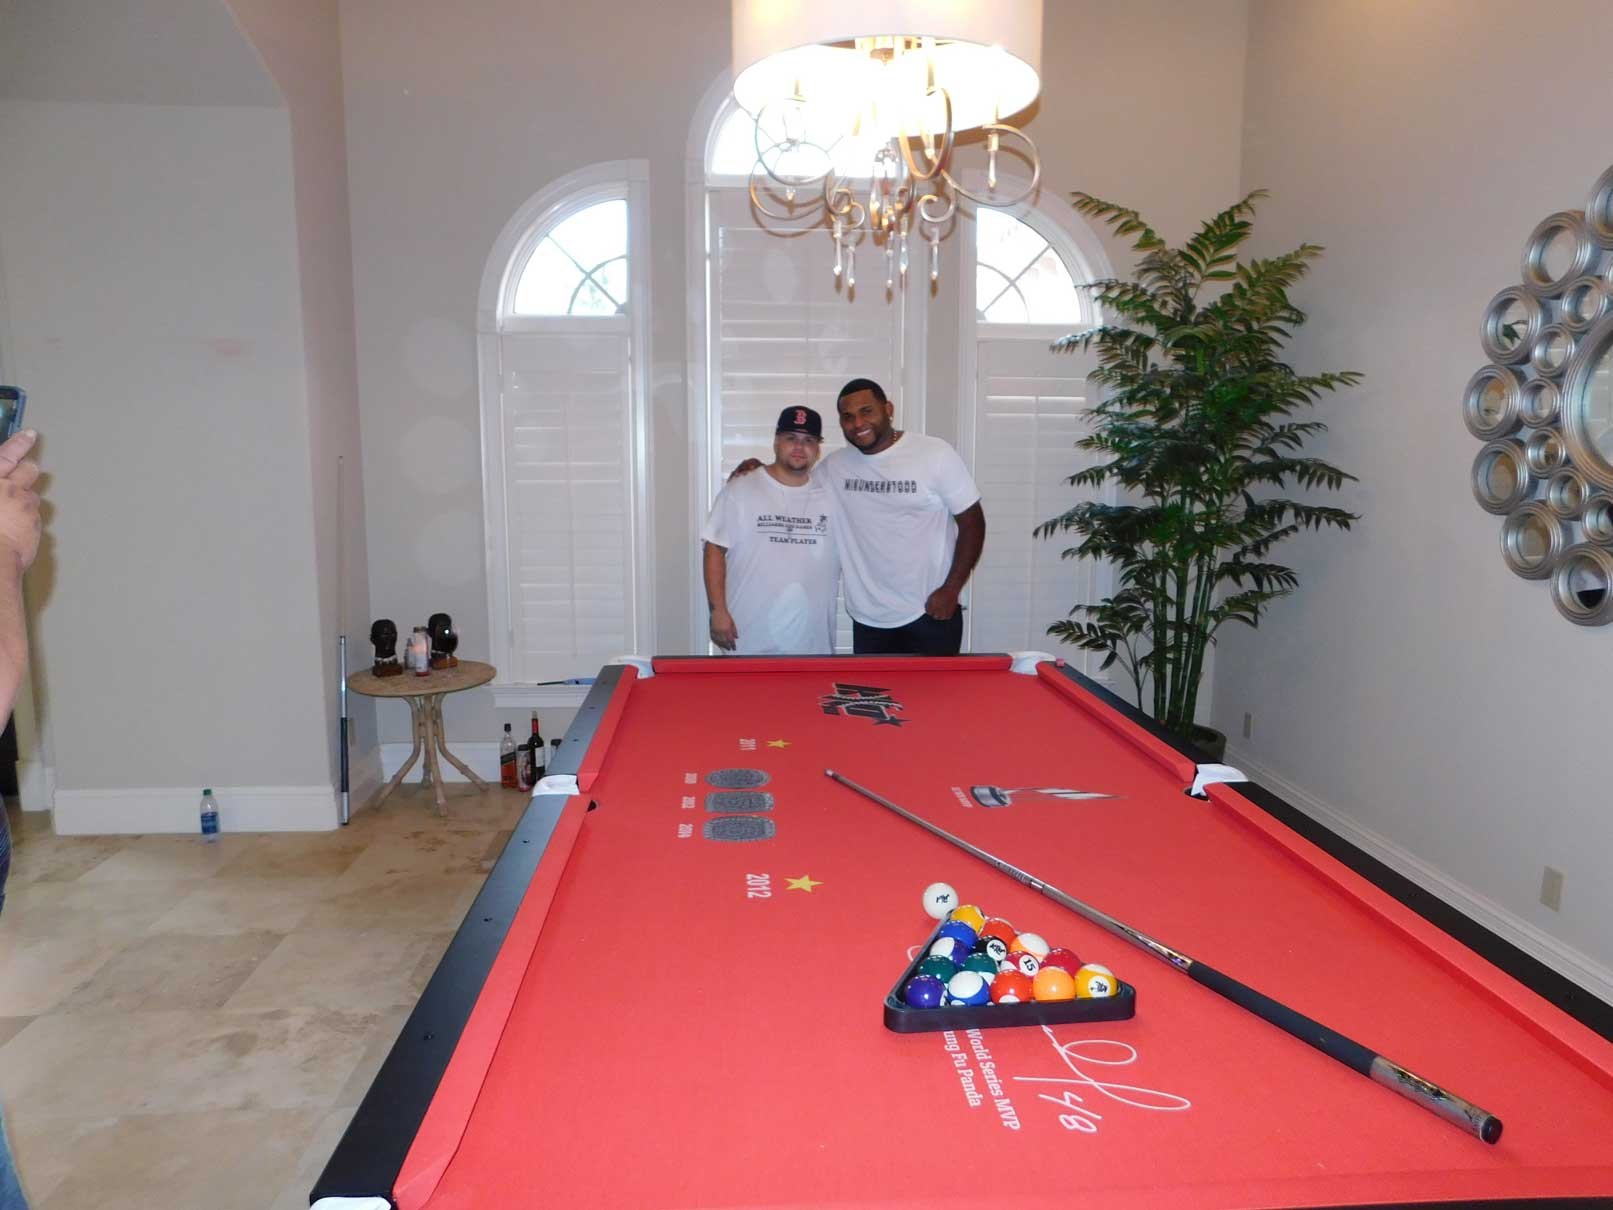 Pablo Sandoval's custom pool table from R&R Outdoors, All Weather Billiards